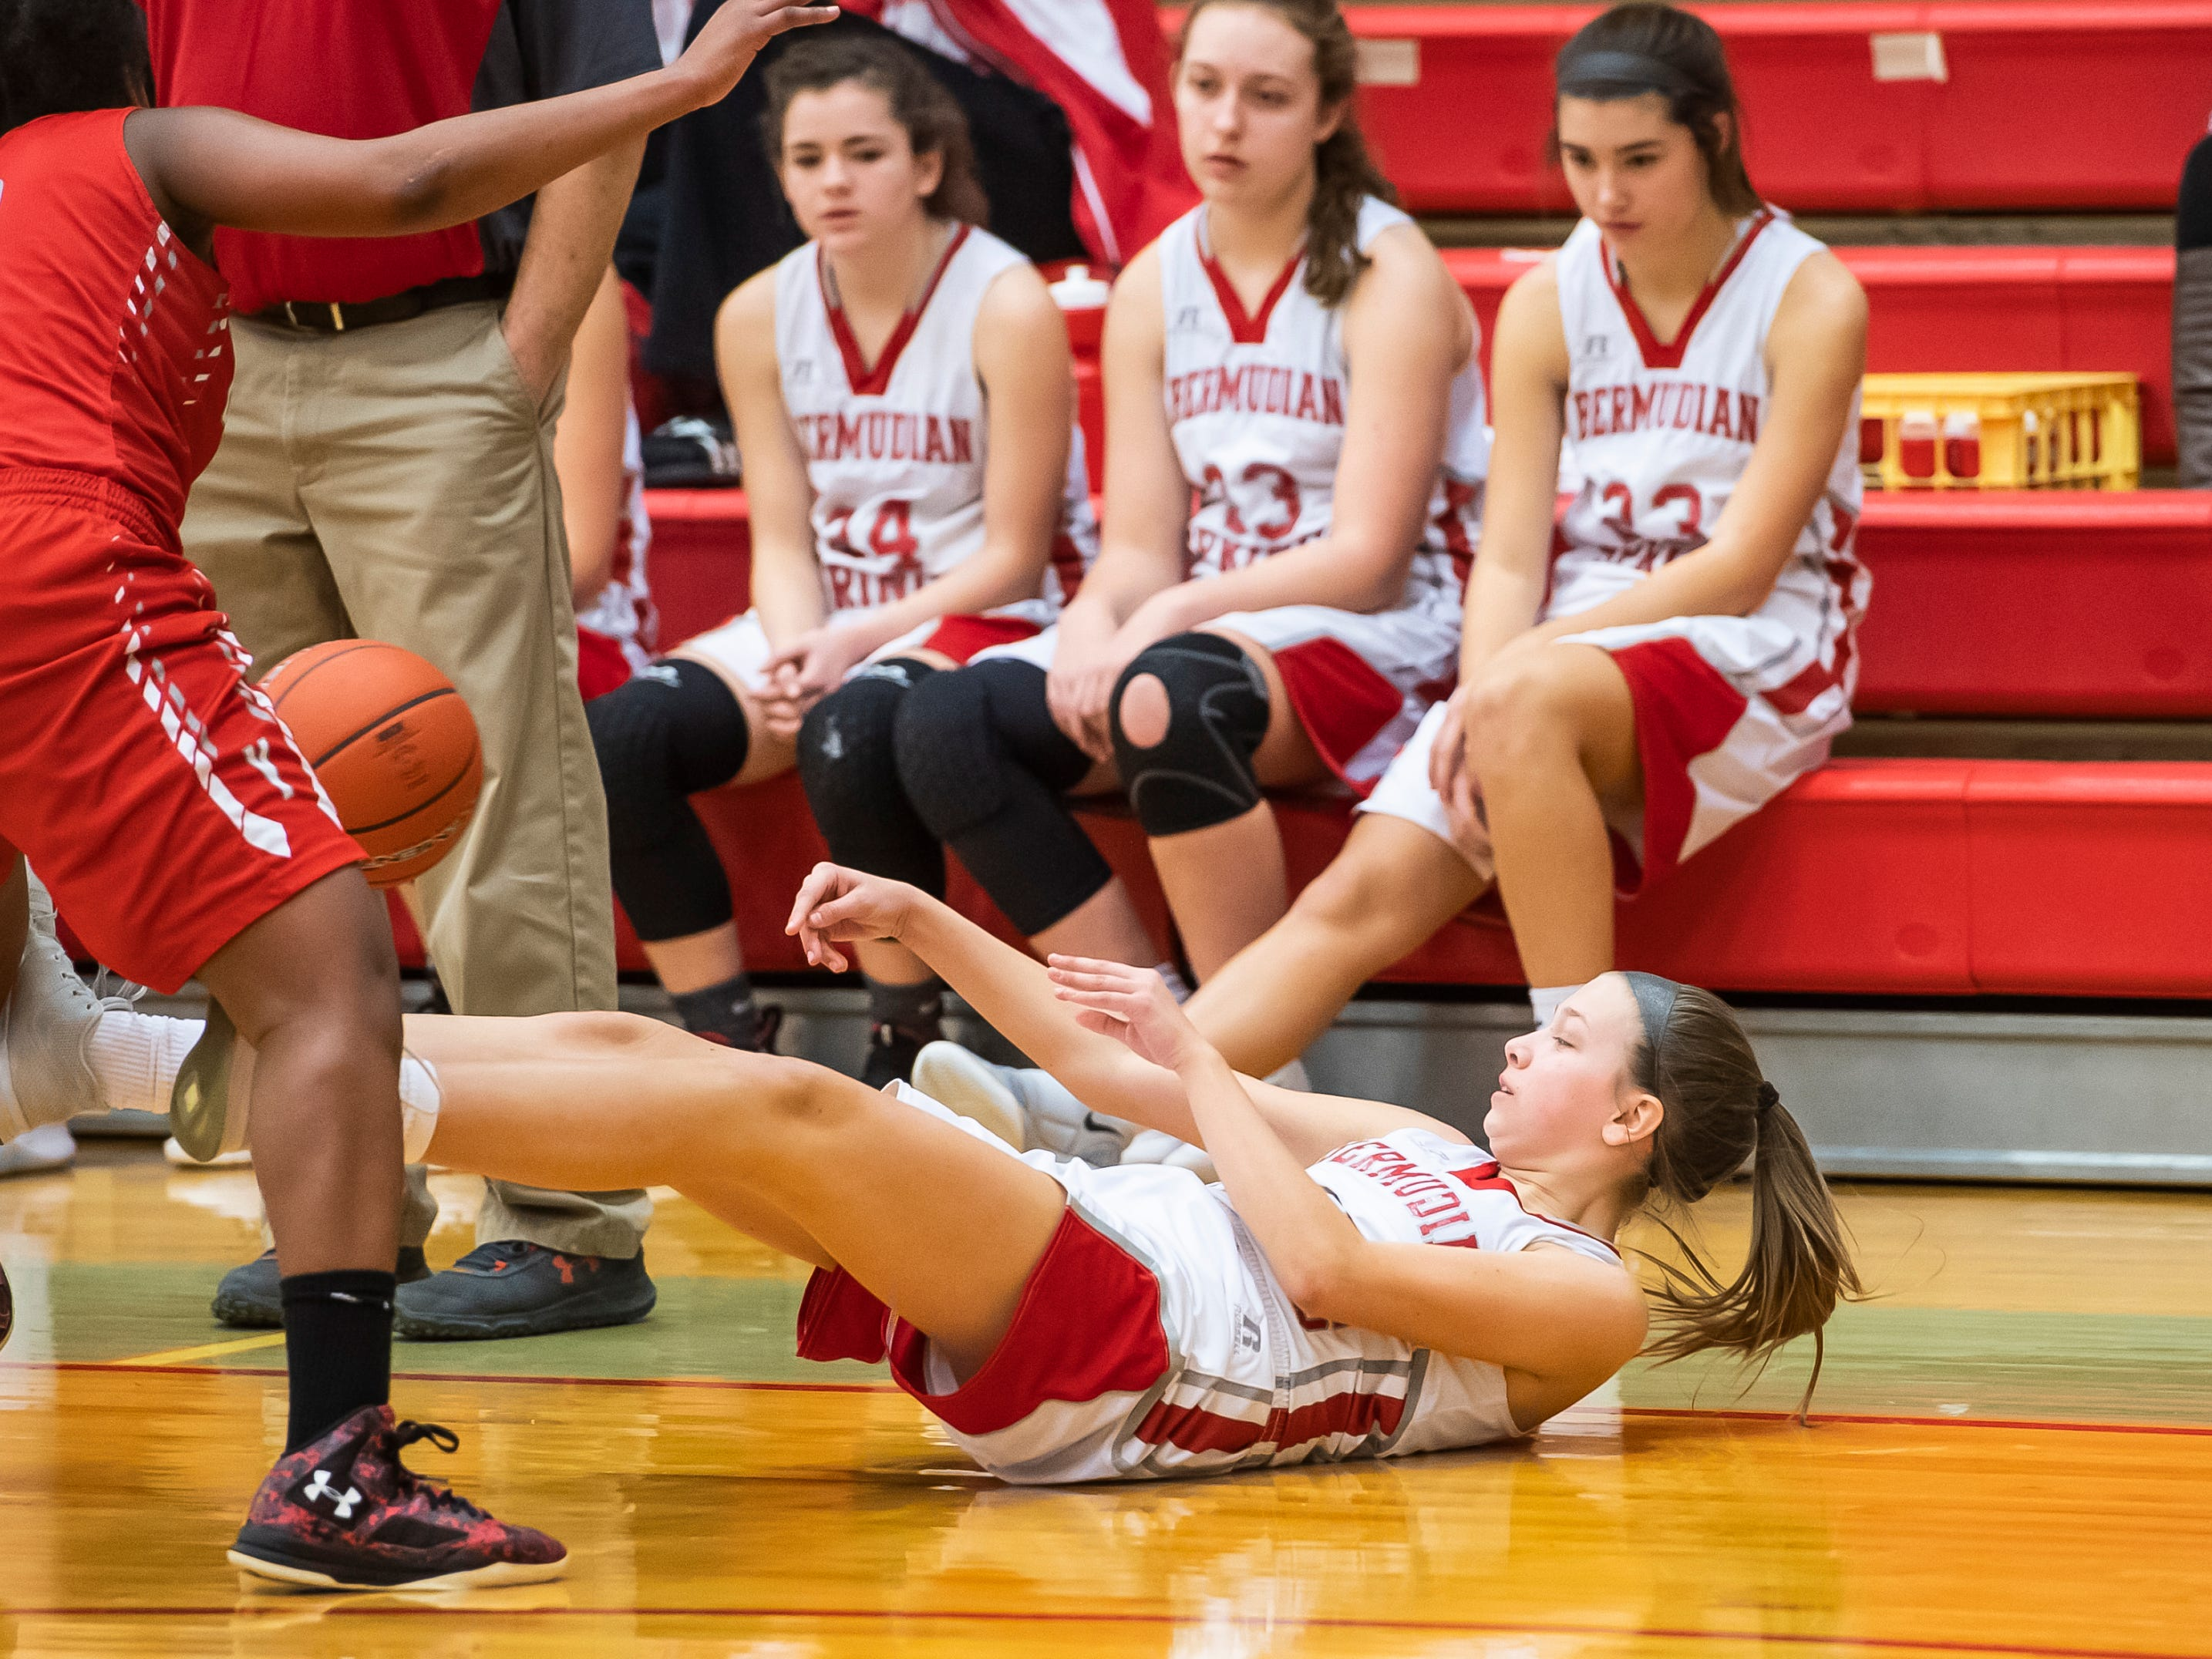 Bermudian Springs' Leah Bealmear slides out of bounds while attempting to save a loose ball during play against York Country Day School at Bermudian Springs High School on Monday, January 14, 2019. The Eagles won 59-20.